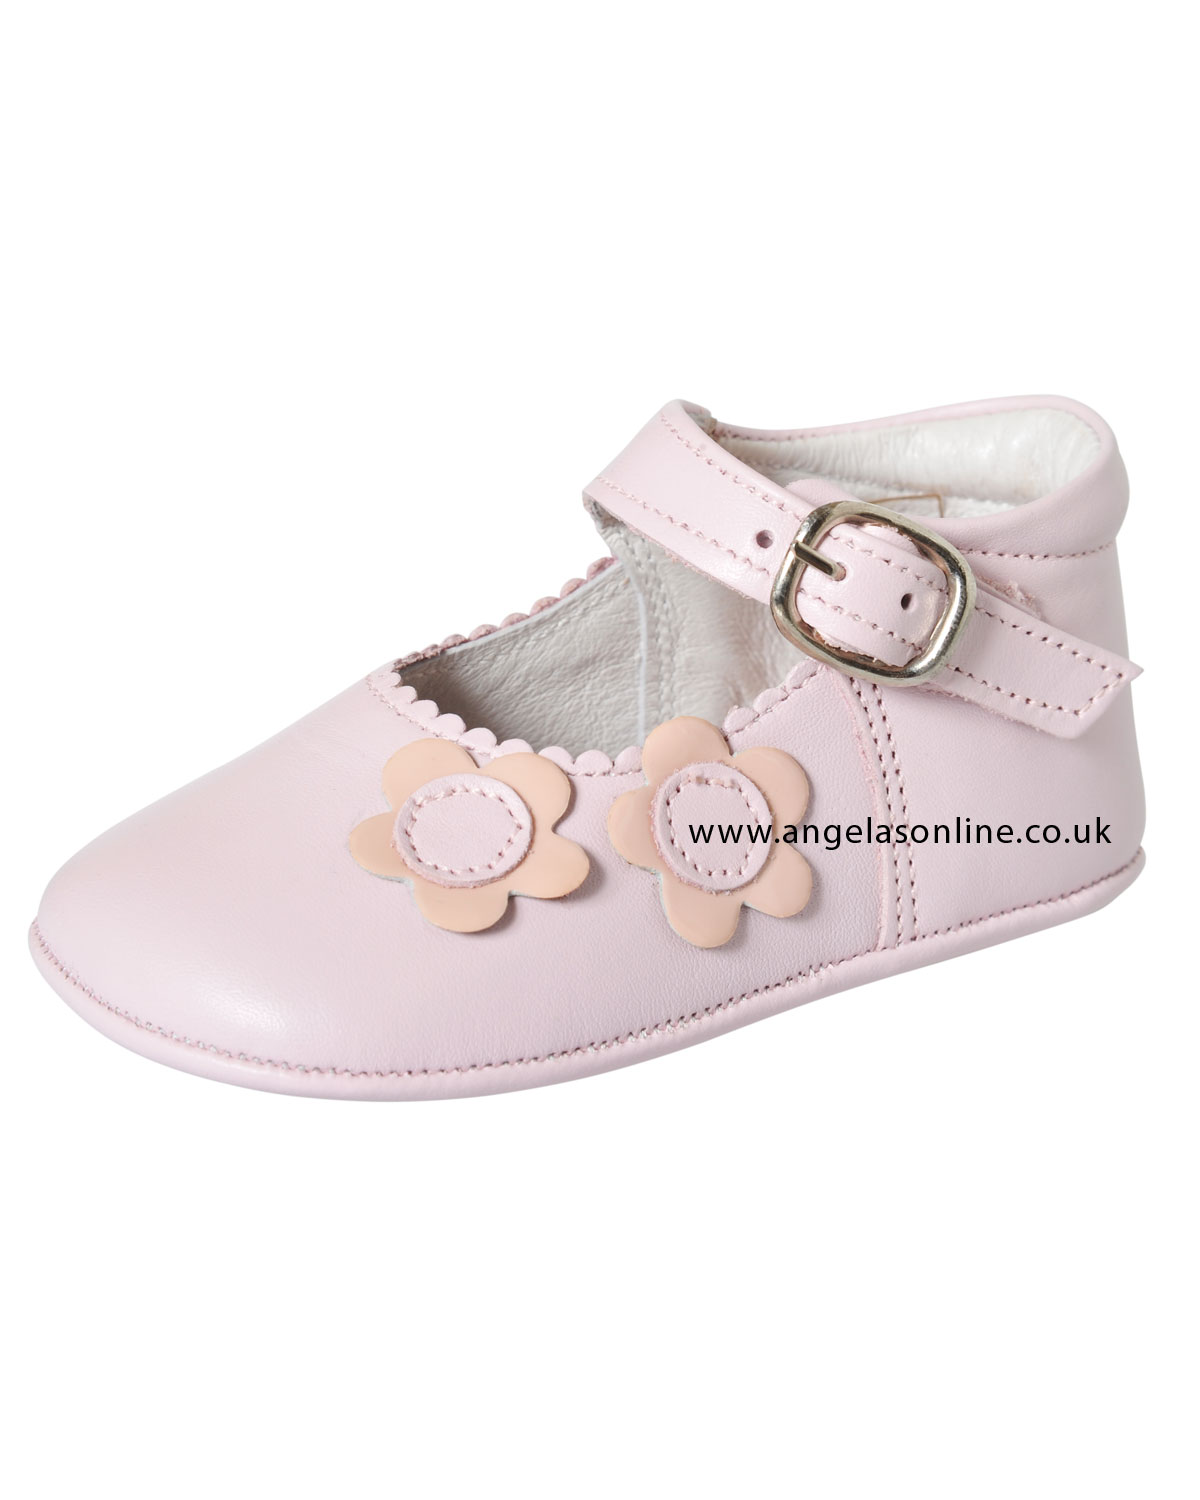 ed1d2a32e64d Andanines Baby Girl Pale Pink Soft Leather Pram Shoe C10005